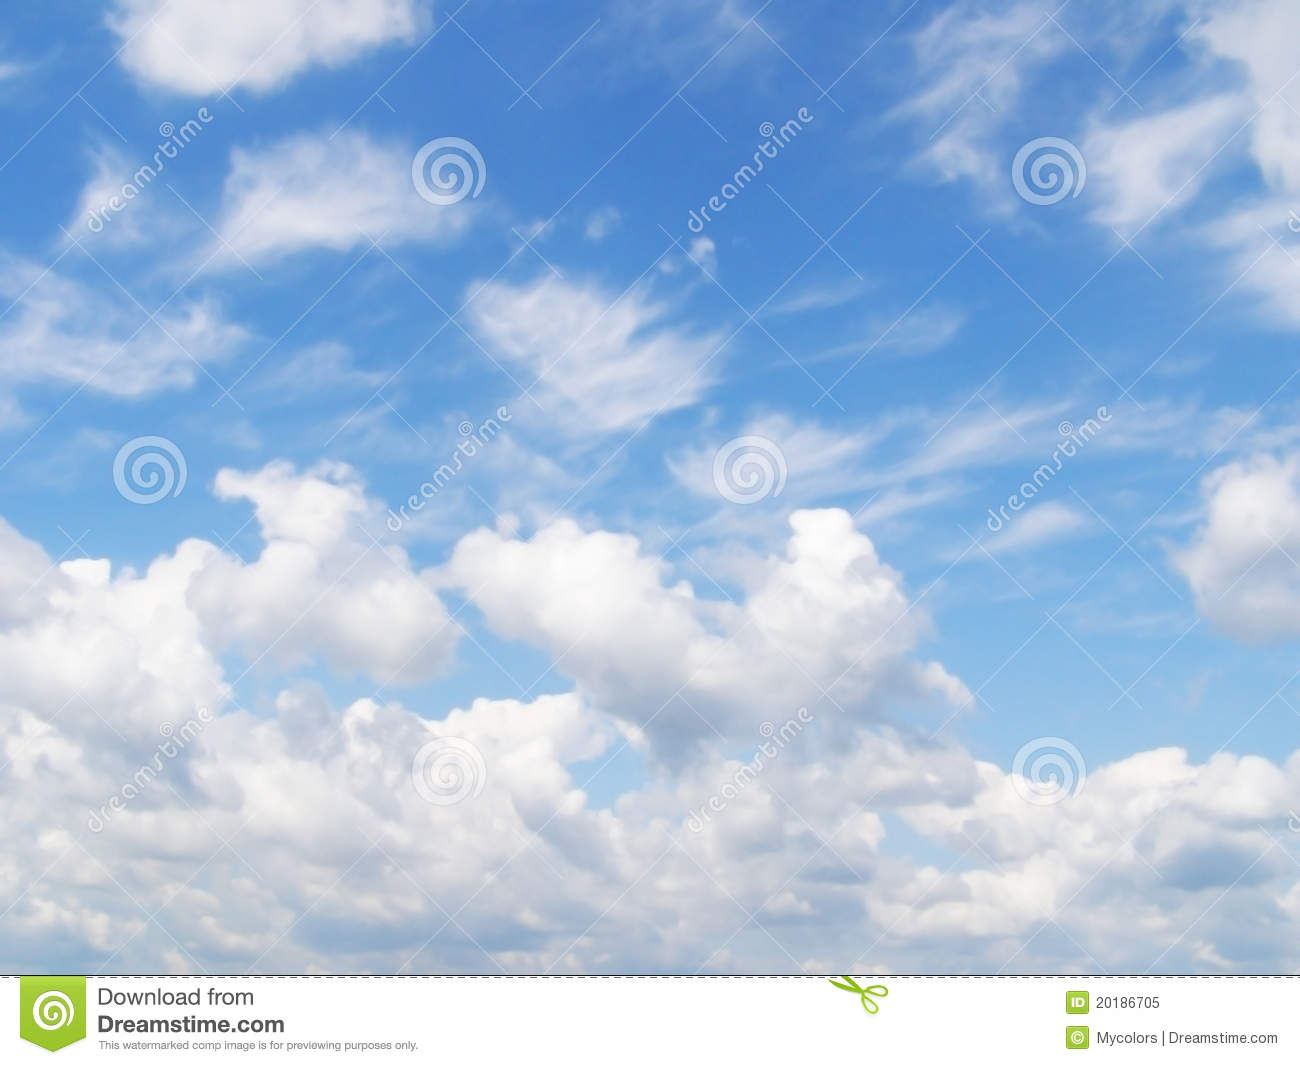 Light Blue Sky and Clouds